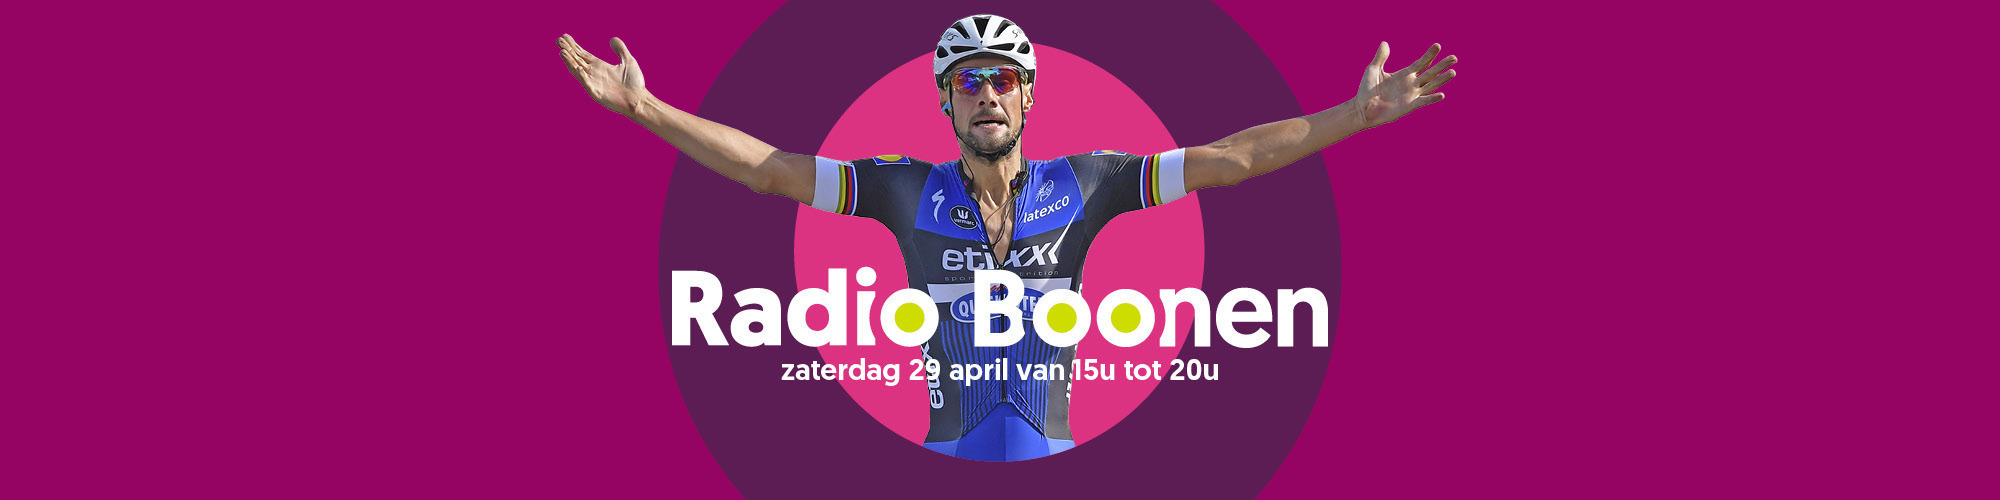 Radioboonen header